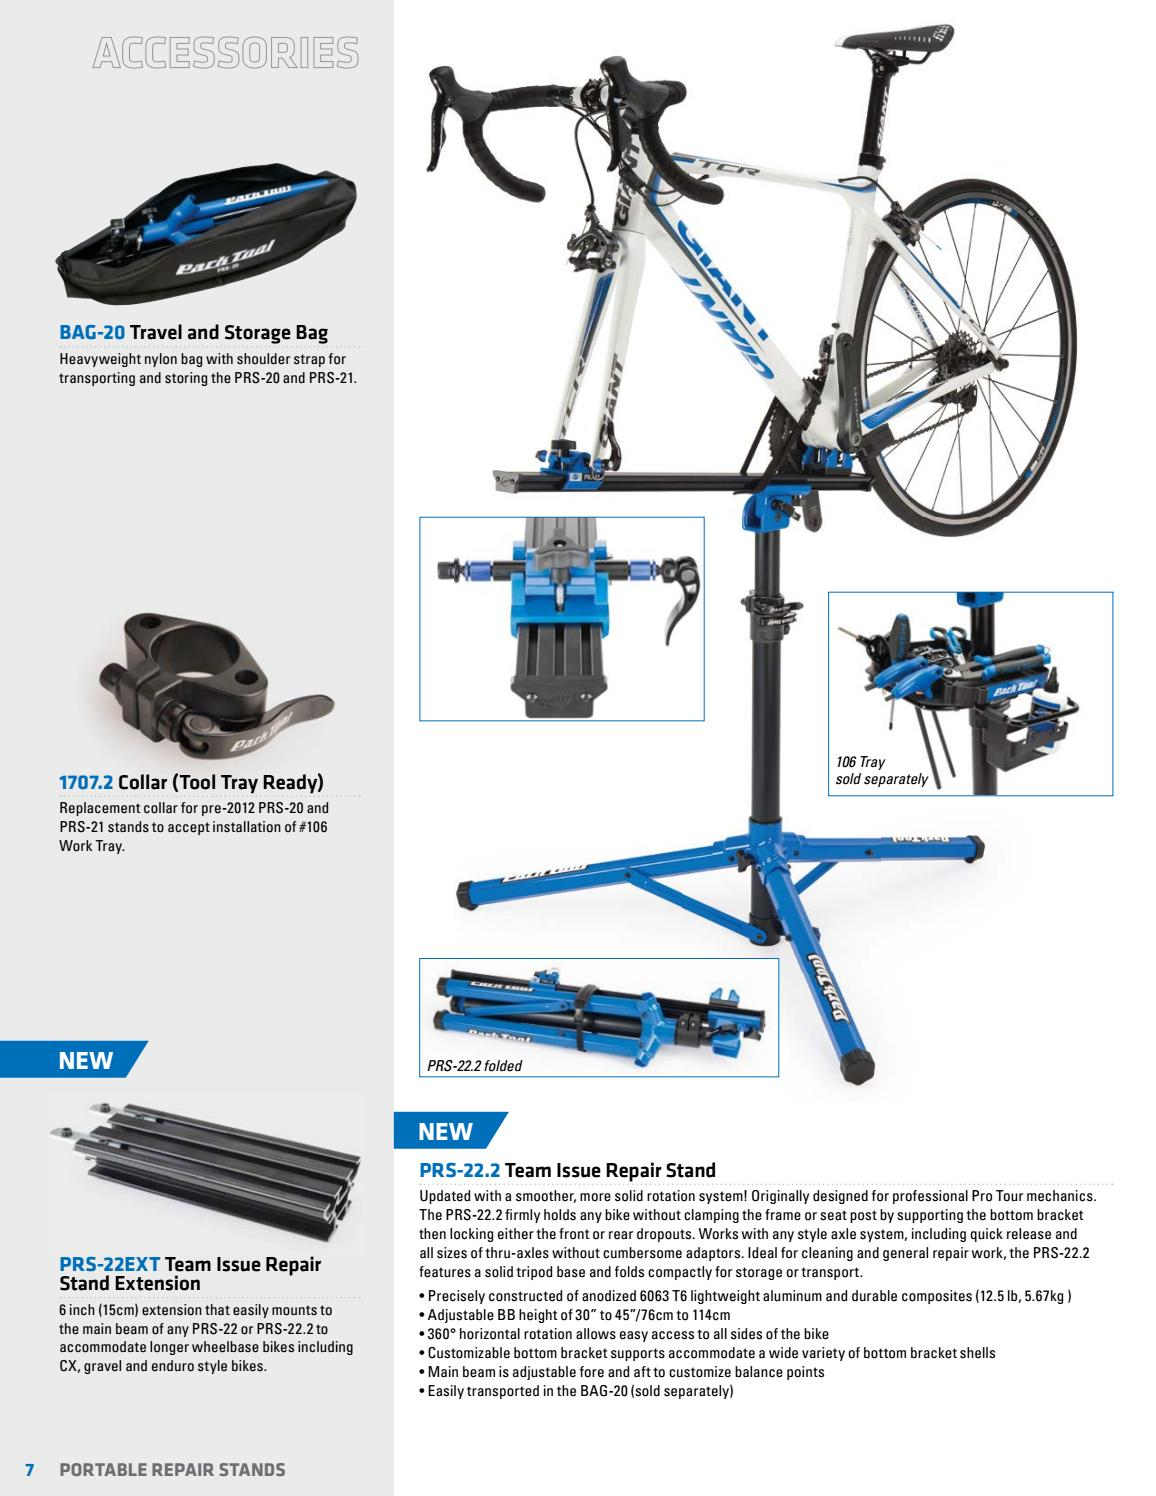 Park Tool PRS-22EXT Team Issue Repair Stand Extension